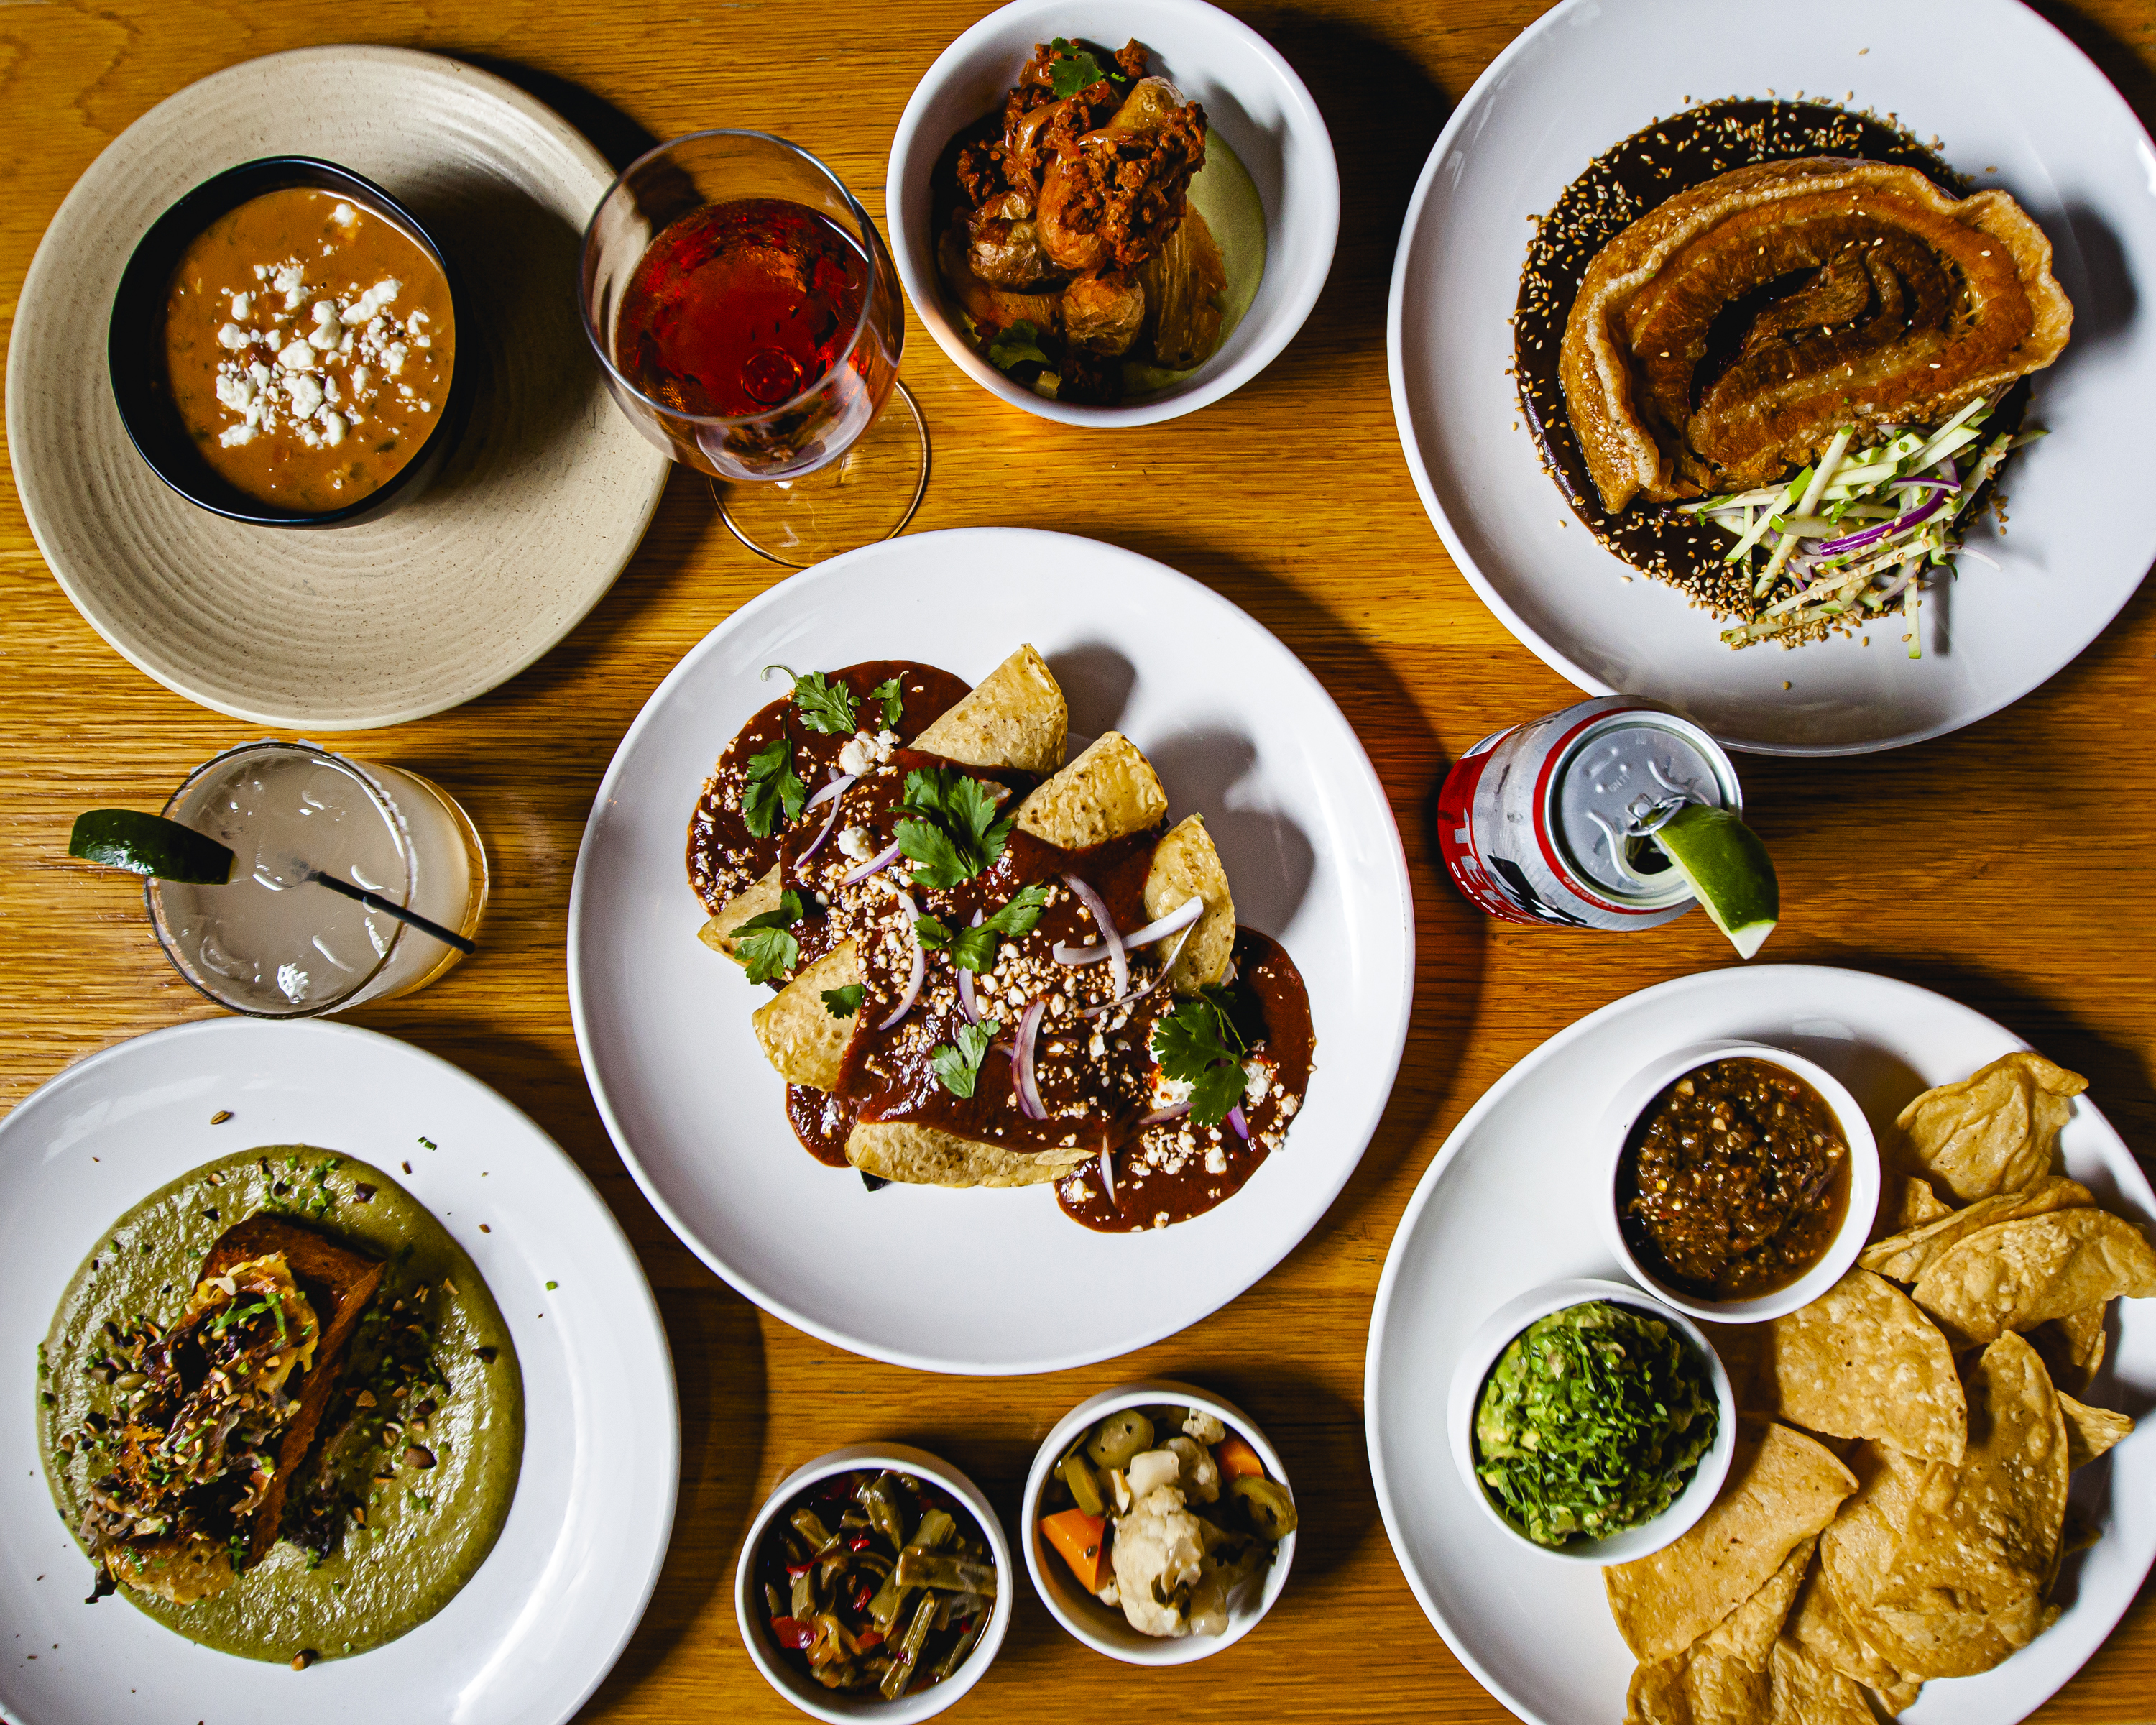 A wooden table filled with round plates and bowls of Mexican food, as well as drinks.